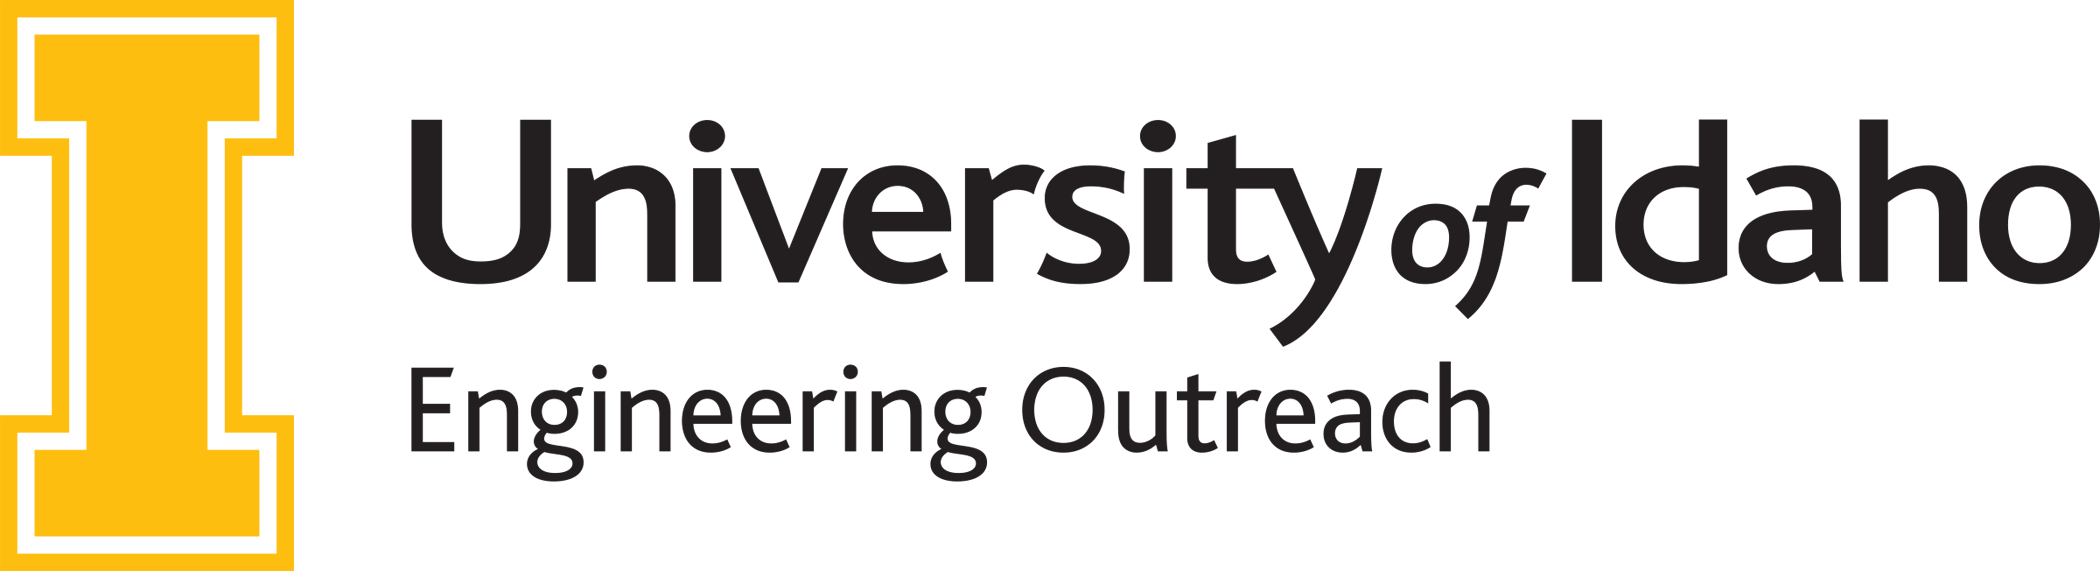 Engineering Outreach Logo